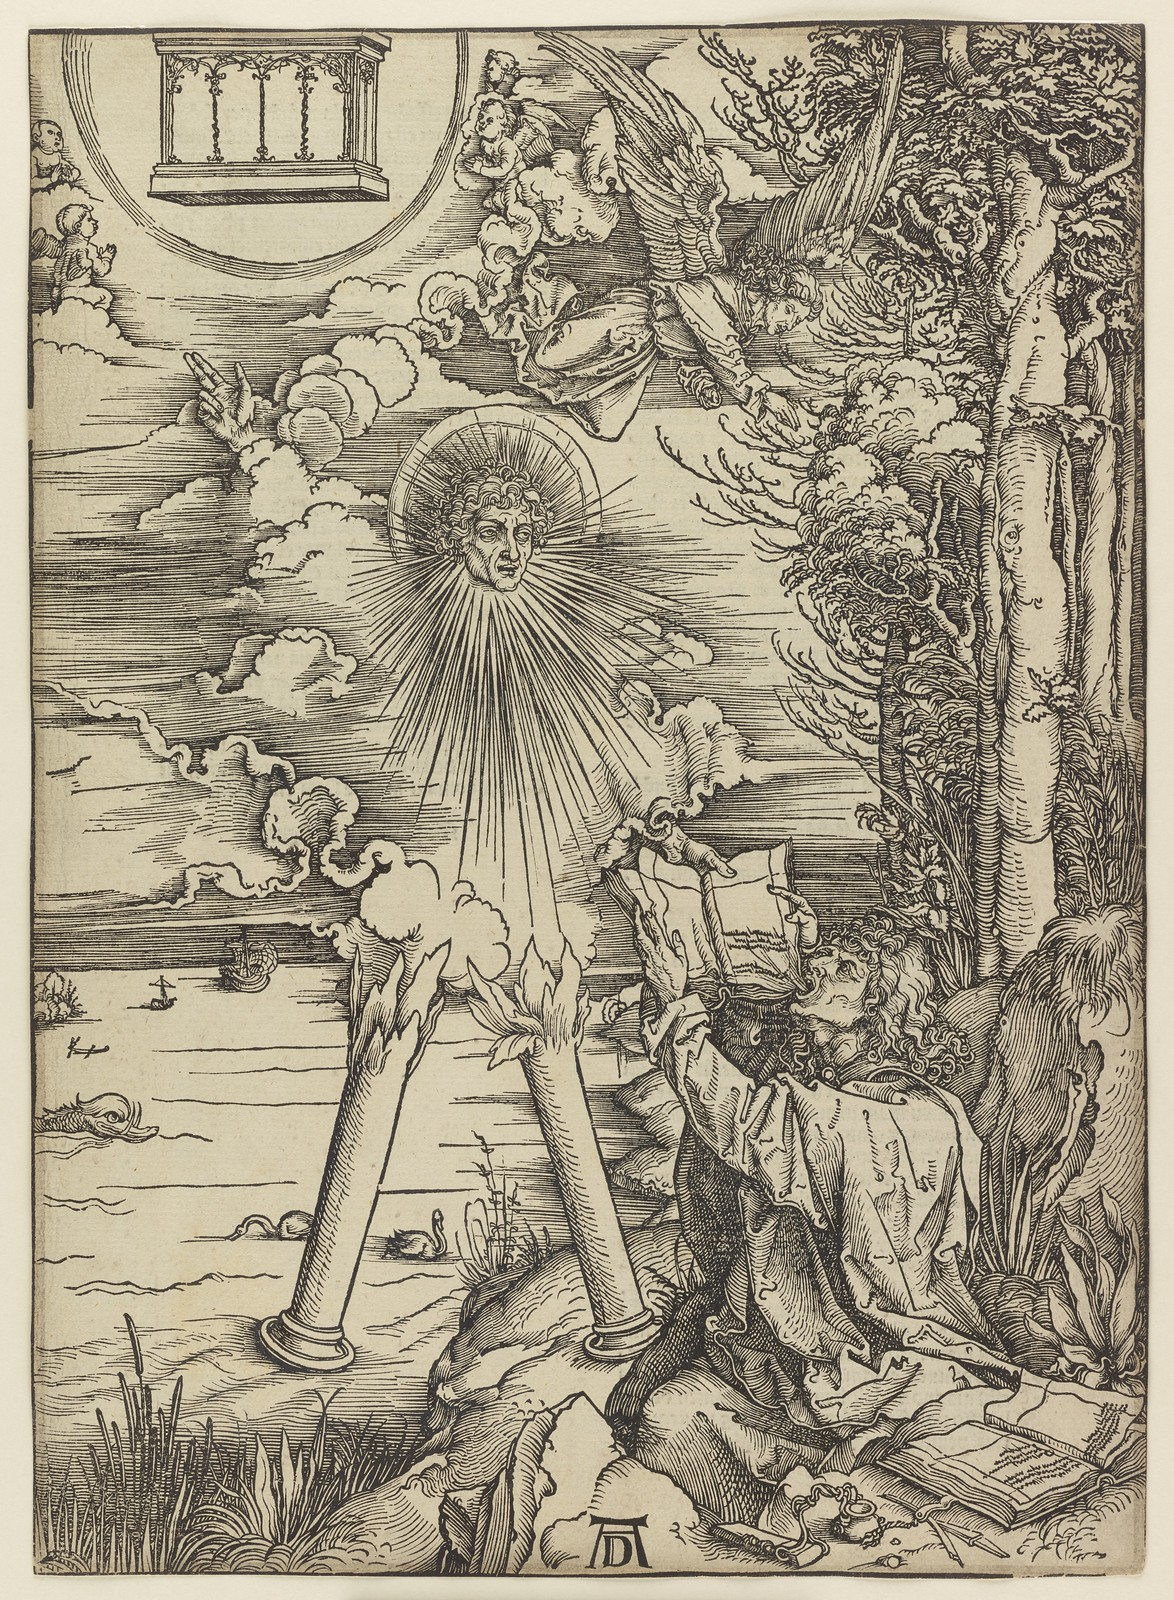 Albrecht Dürer - St John devouring the book, Plate nine of fifteen from the Latin edition of The Apocalypse series, printed 1511